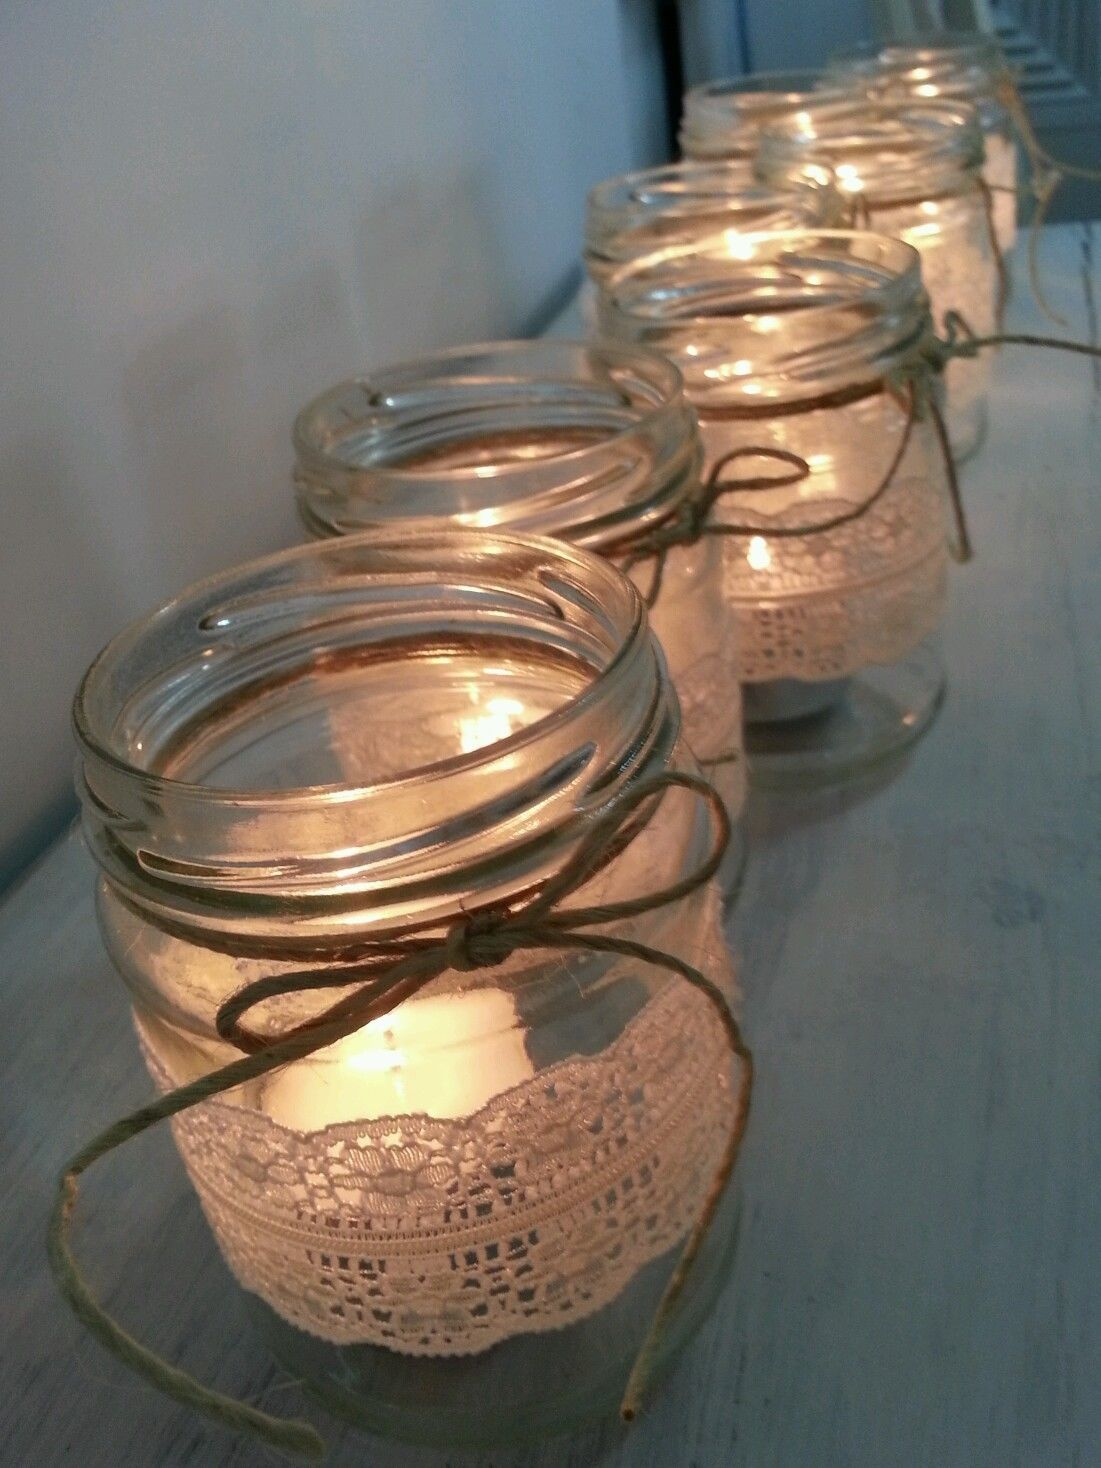 10 rustic lace glass jar candle holder wedding christmas decoration 10 rustic lace glass jar candle holder wedding christmas decoration ebay junglespirit